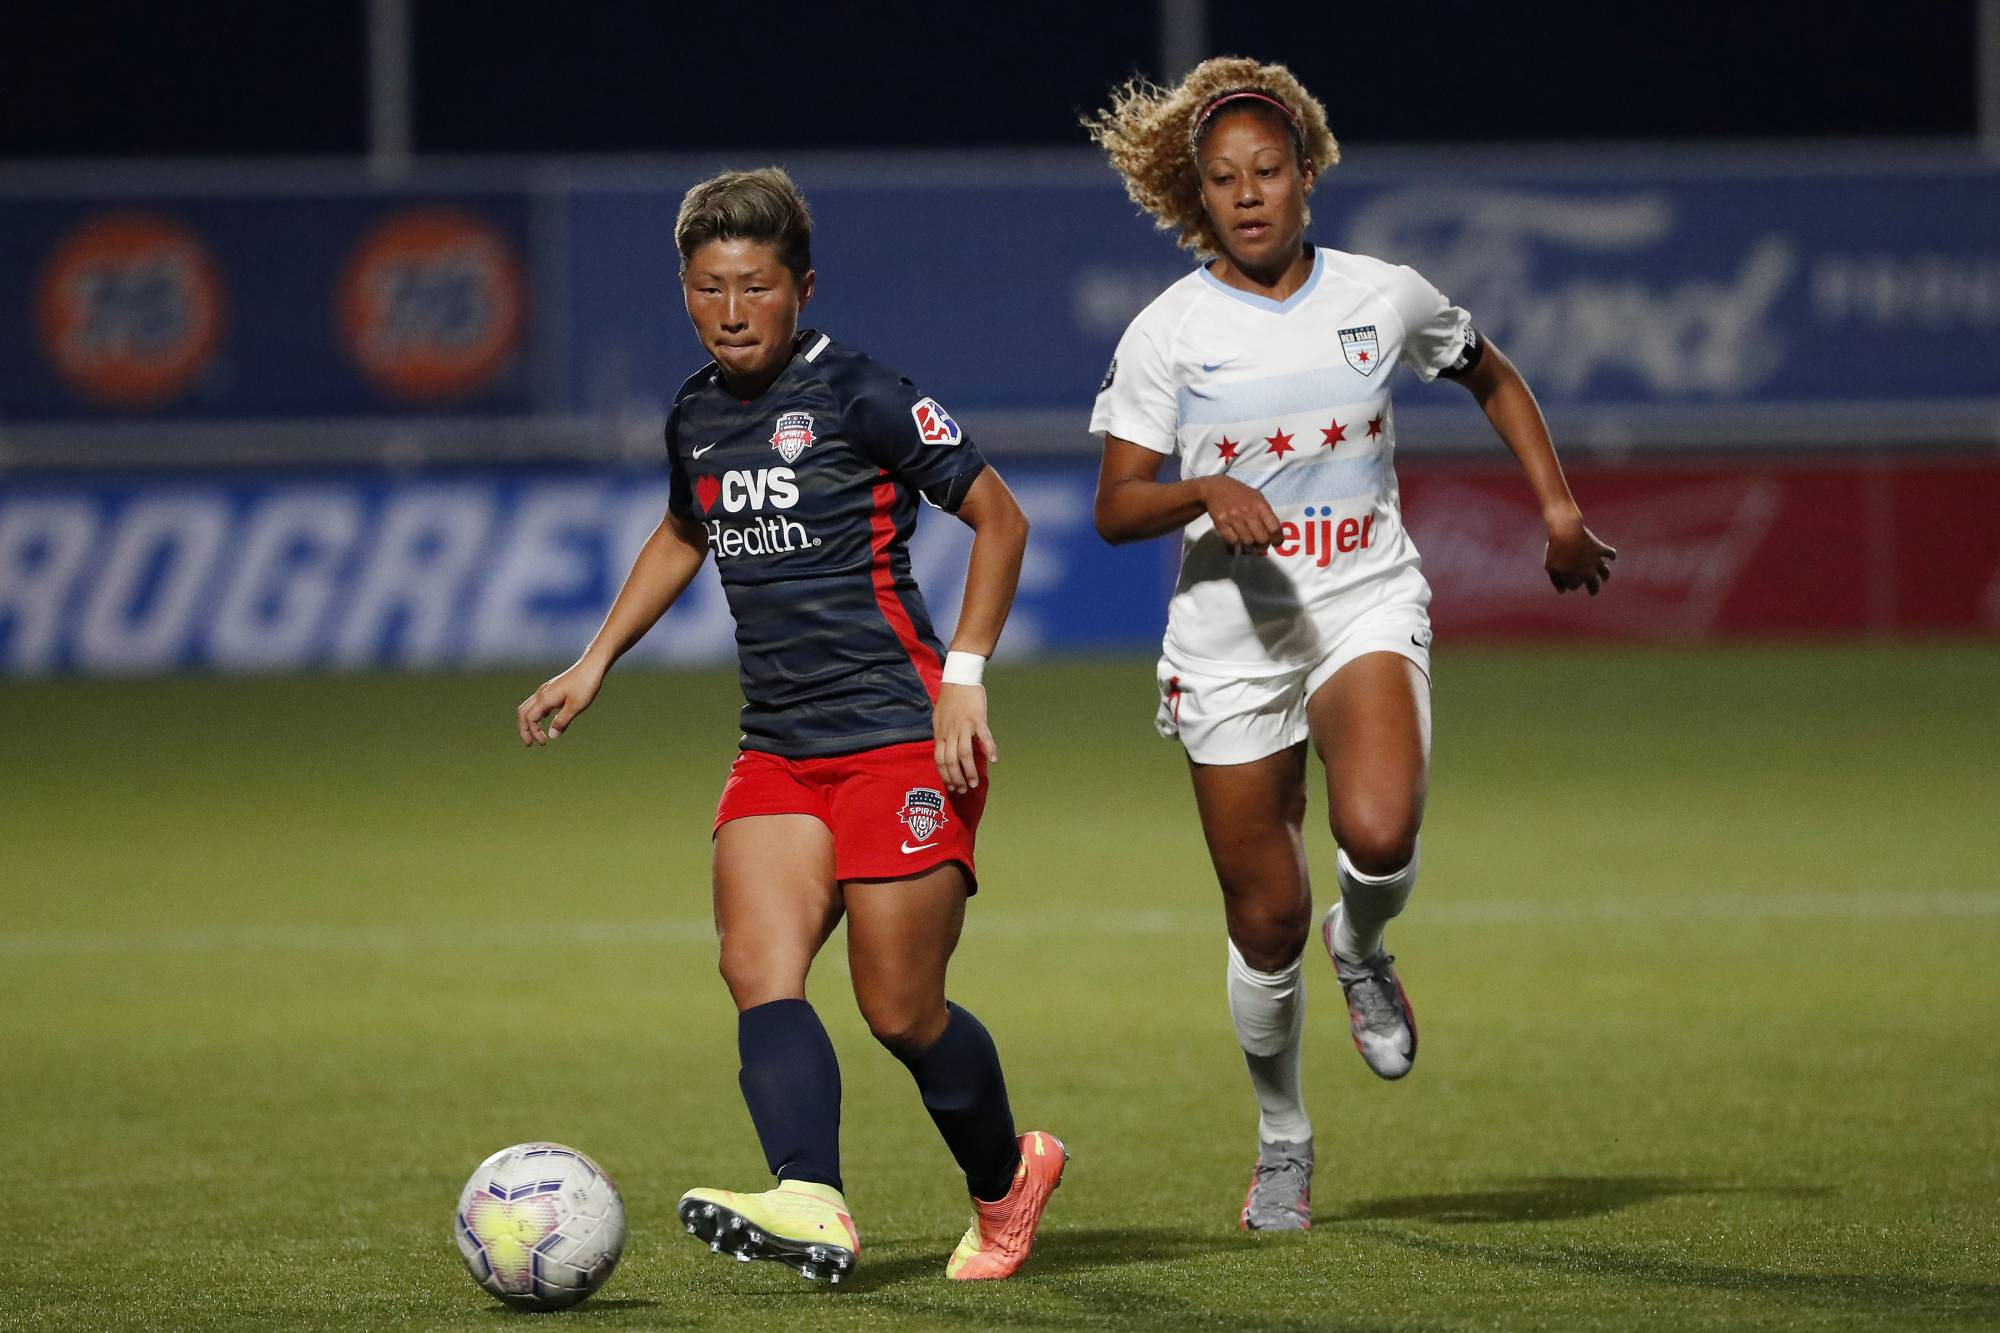 Before joining the Spirit at the end of 2019, Yokoyama played for the Nadeshiko League's Okayama Yunogo Belle and AC Nagano Parceiro as well as Germany's Frankfurt. | USA TODAY / VIA REUTERS